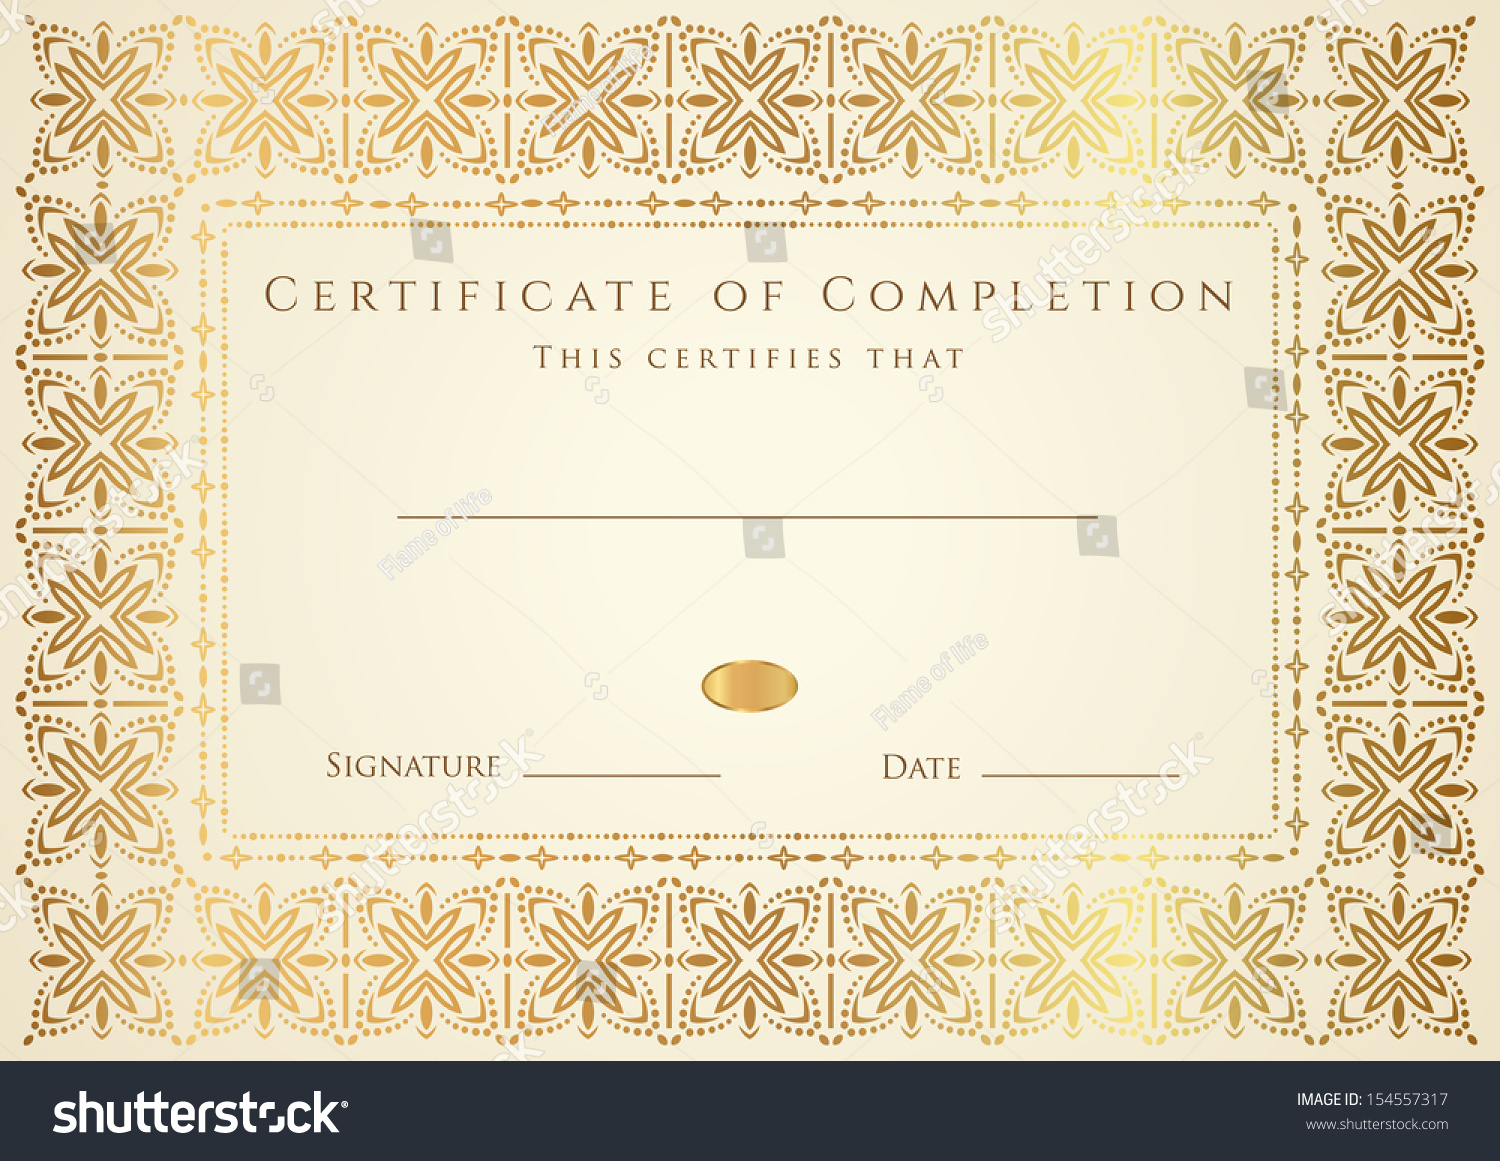 Certificate diploma completion design template background stock certificate diploma of completion design template background gold floral scroll yadclub Gallery